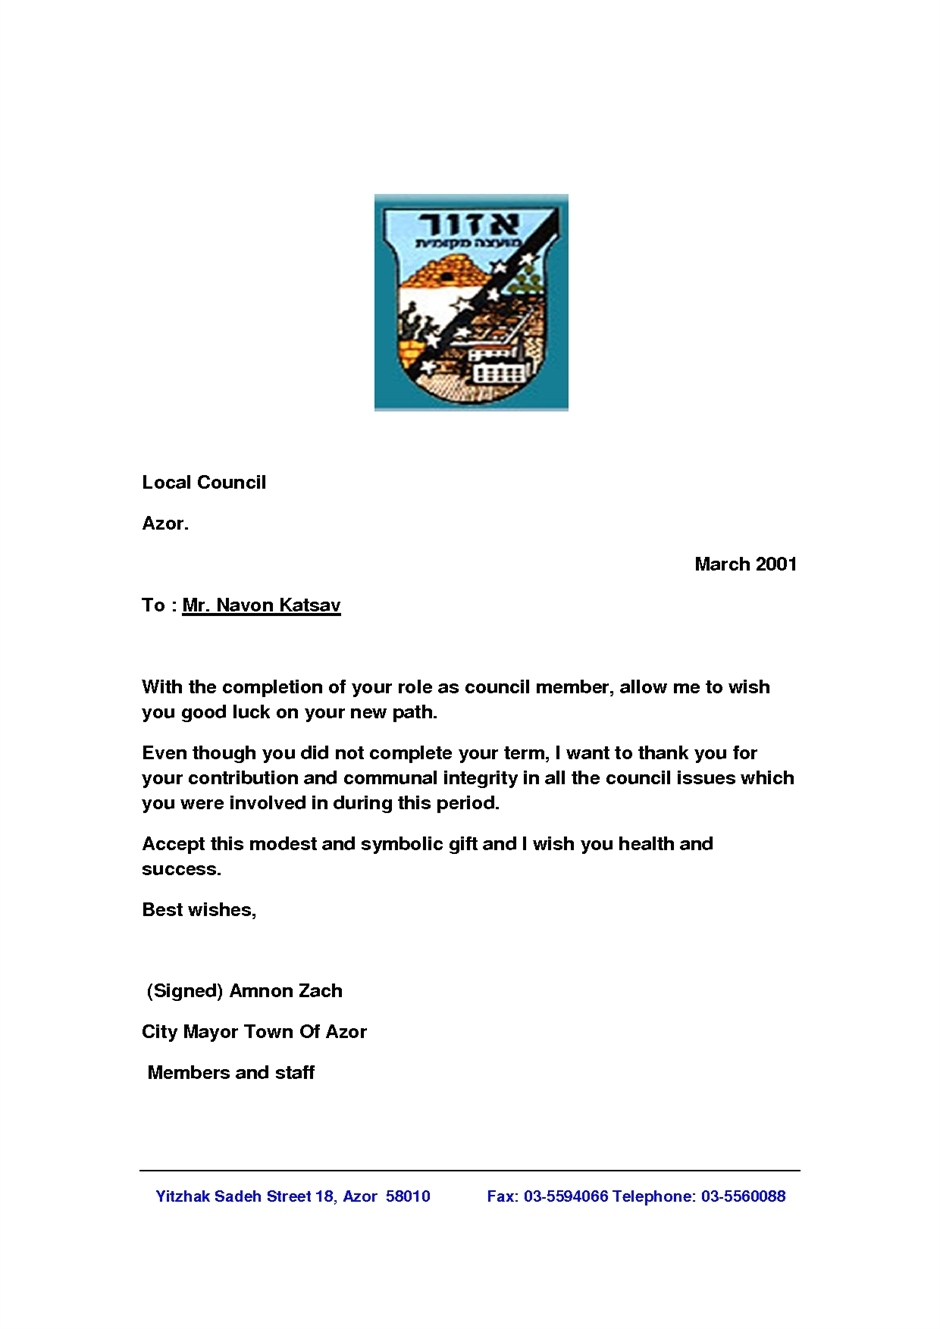 Letter of Appreciation Signed By Mr